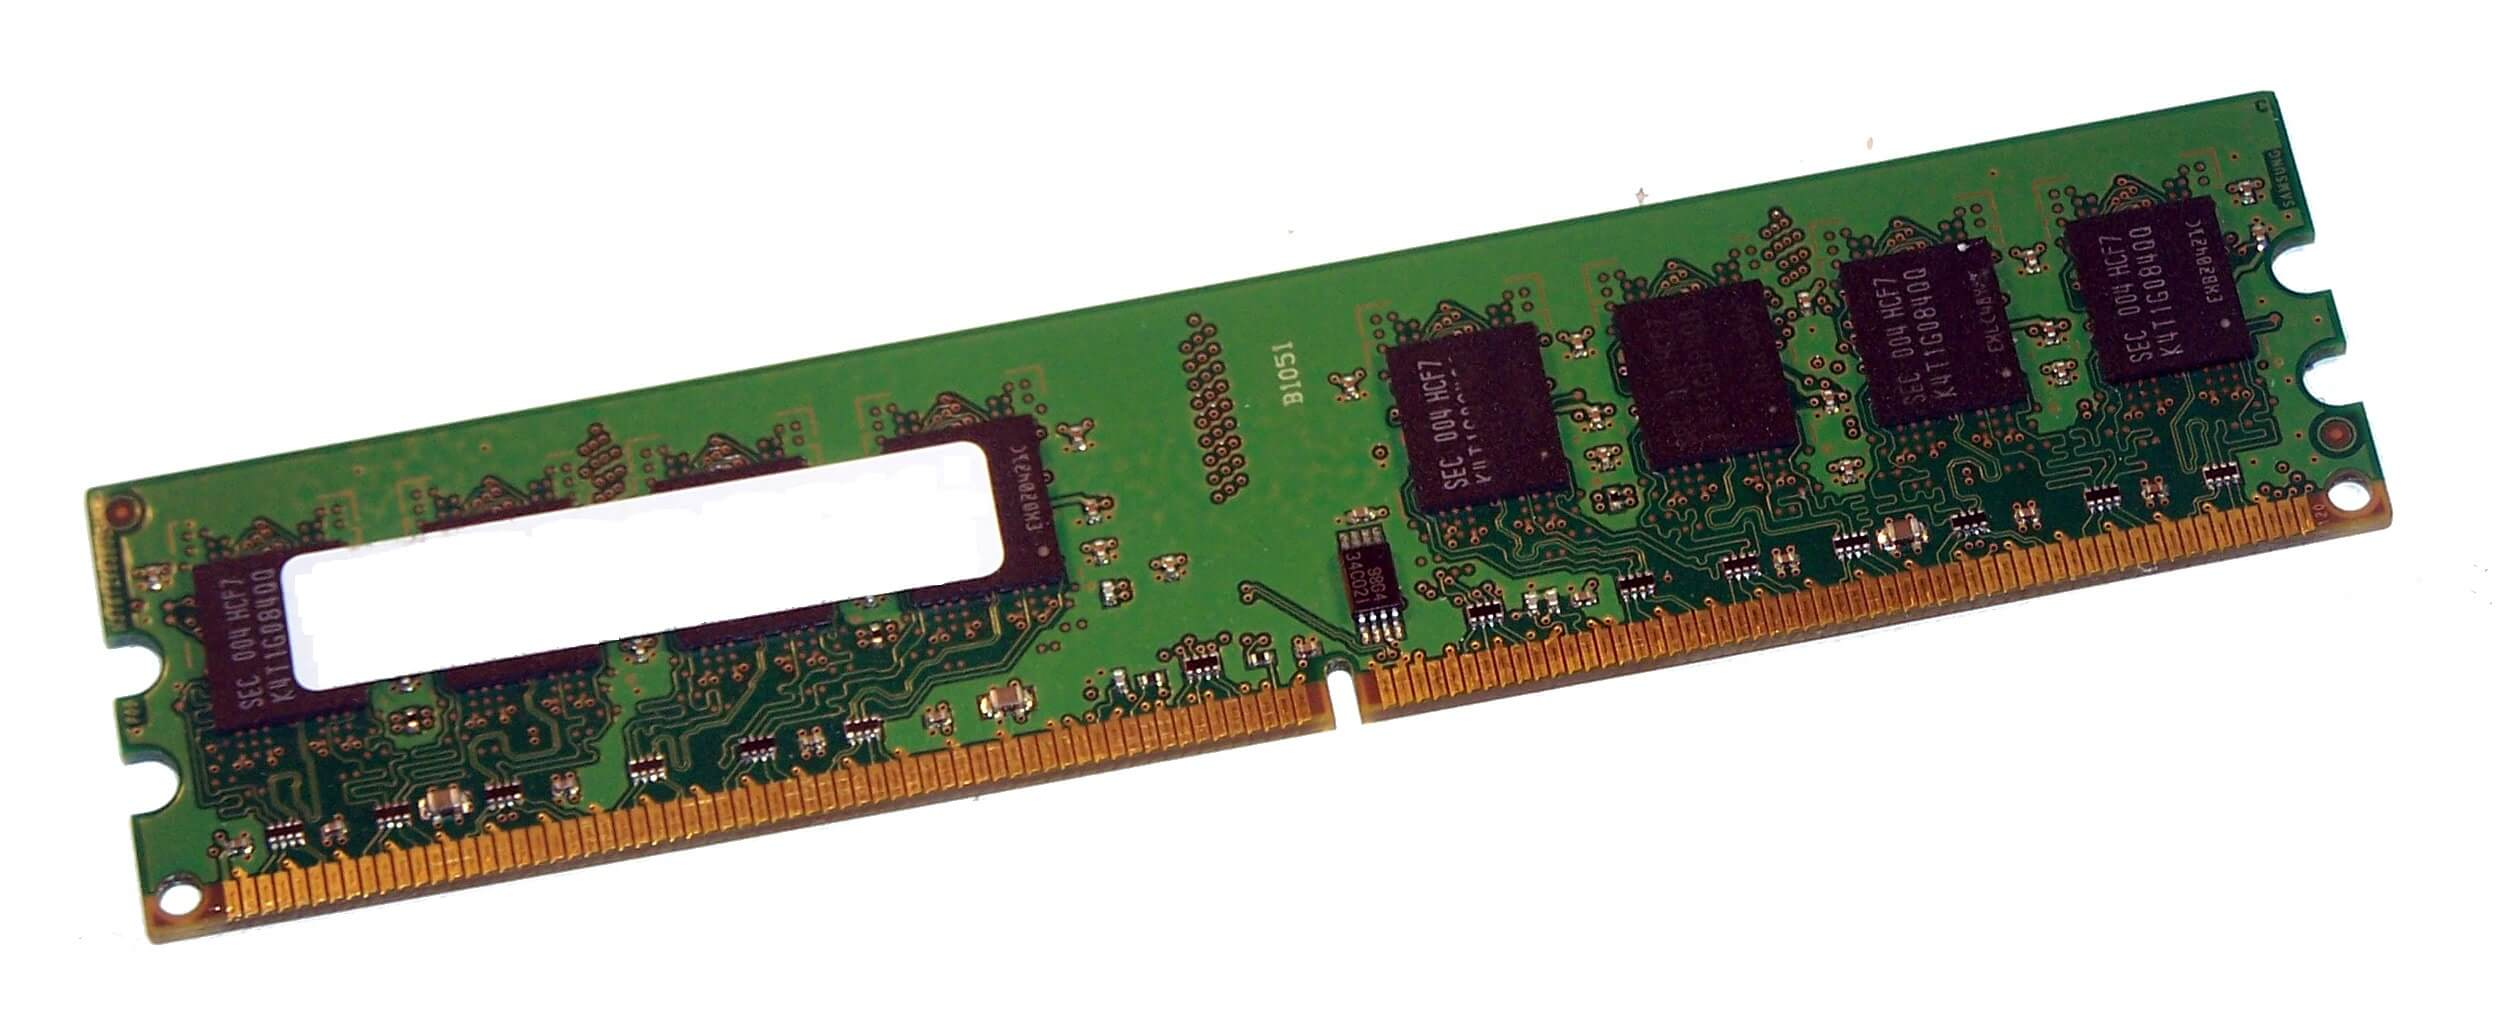 PAMIĘĆ DDR2 256MB 400MHz DO PC